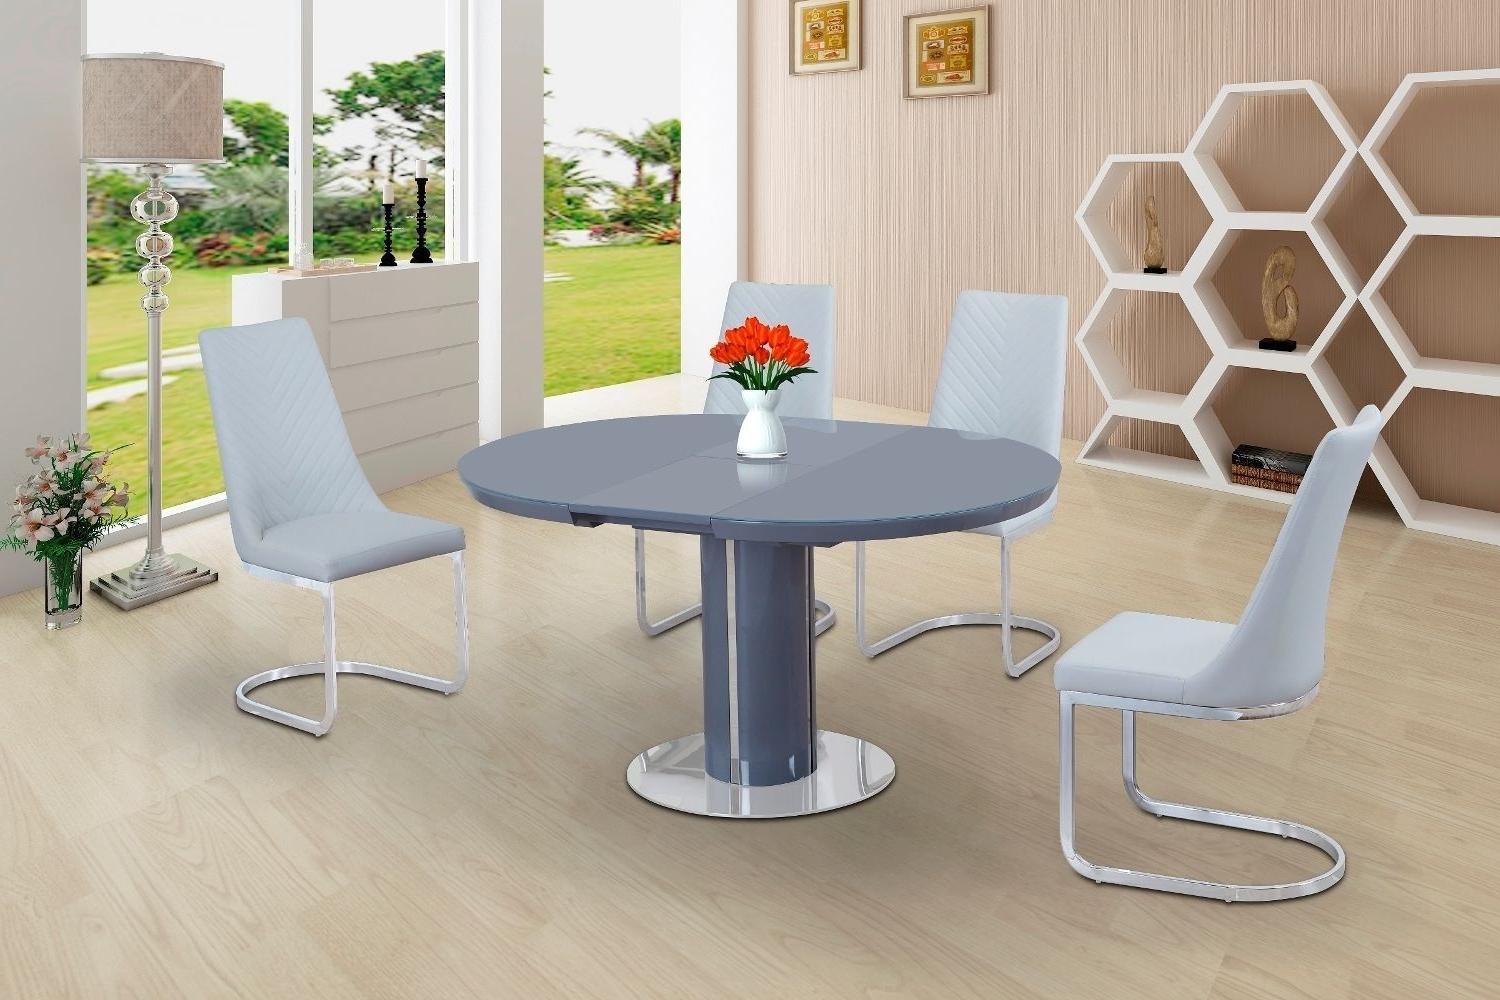 Extendable Round Dining Tables Sets in Fashionable Eclipse Round Oval Gloss & Glass Extending 110 To 145 Cm Dining